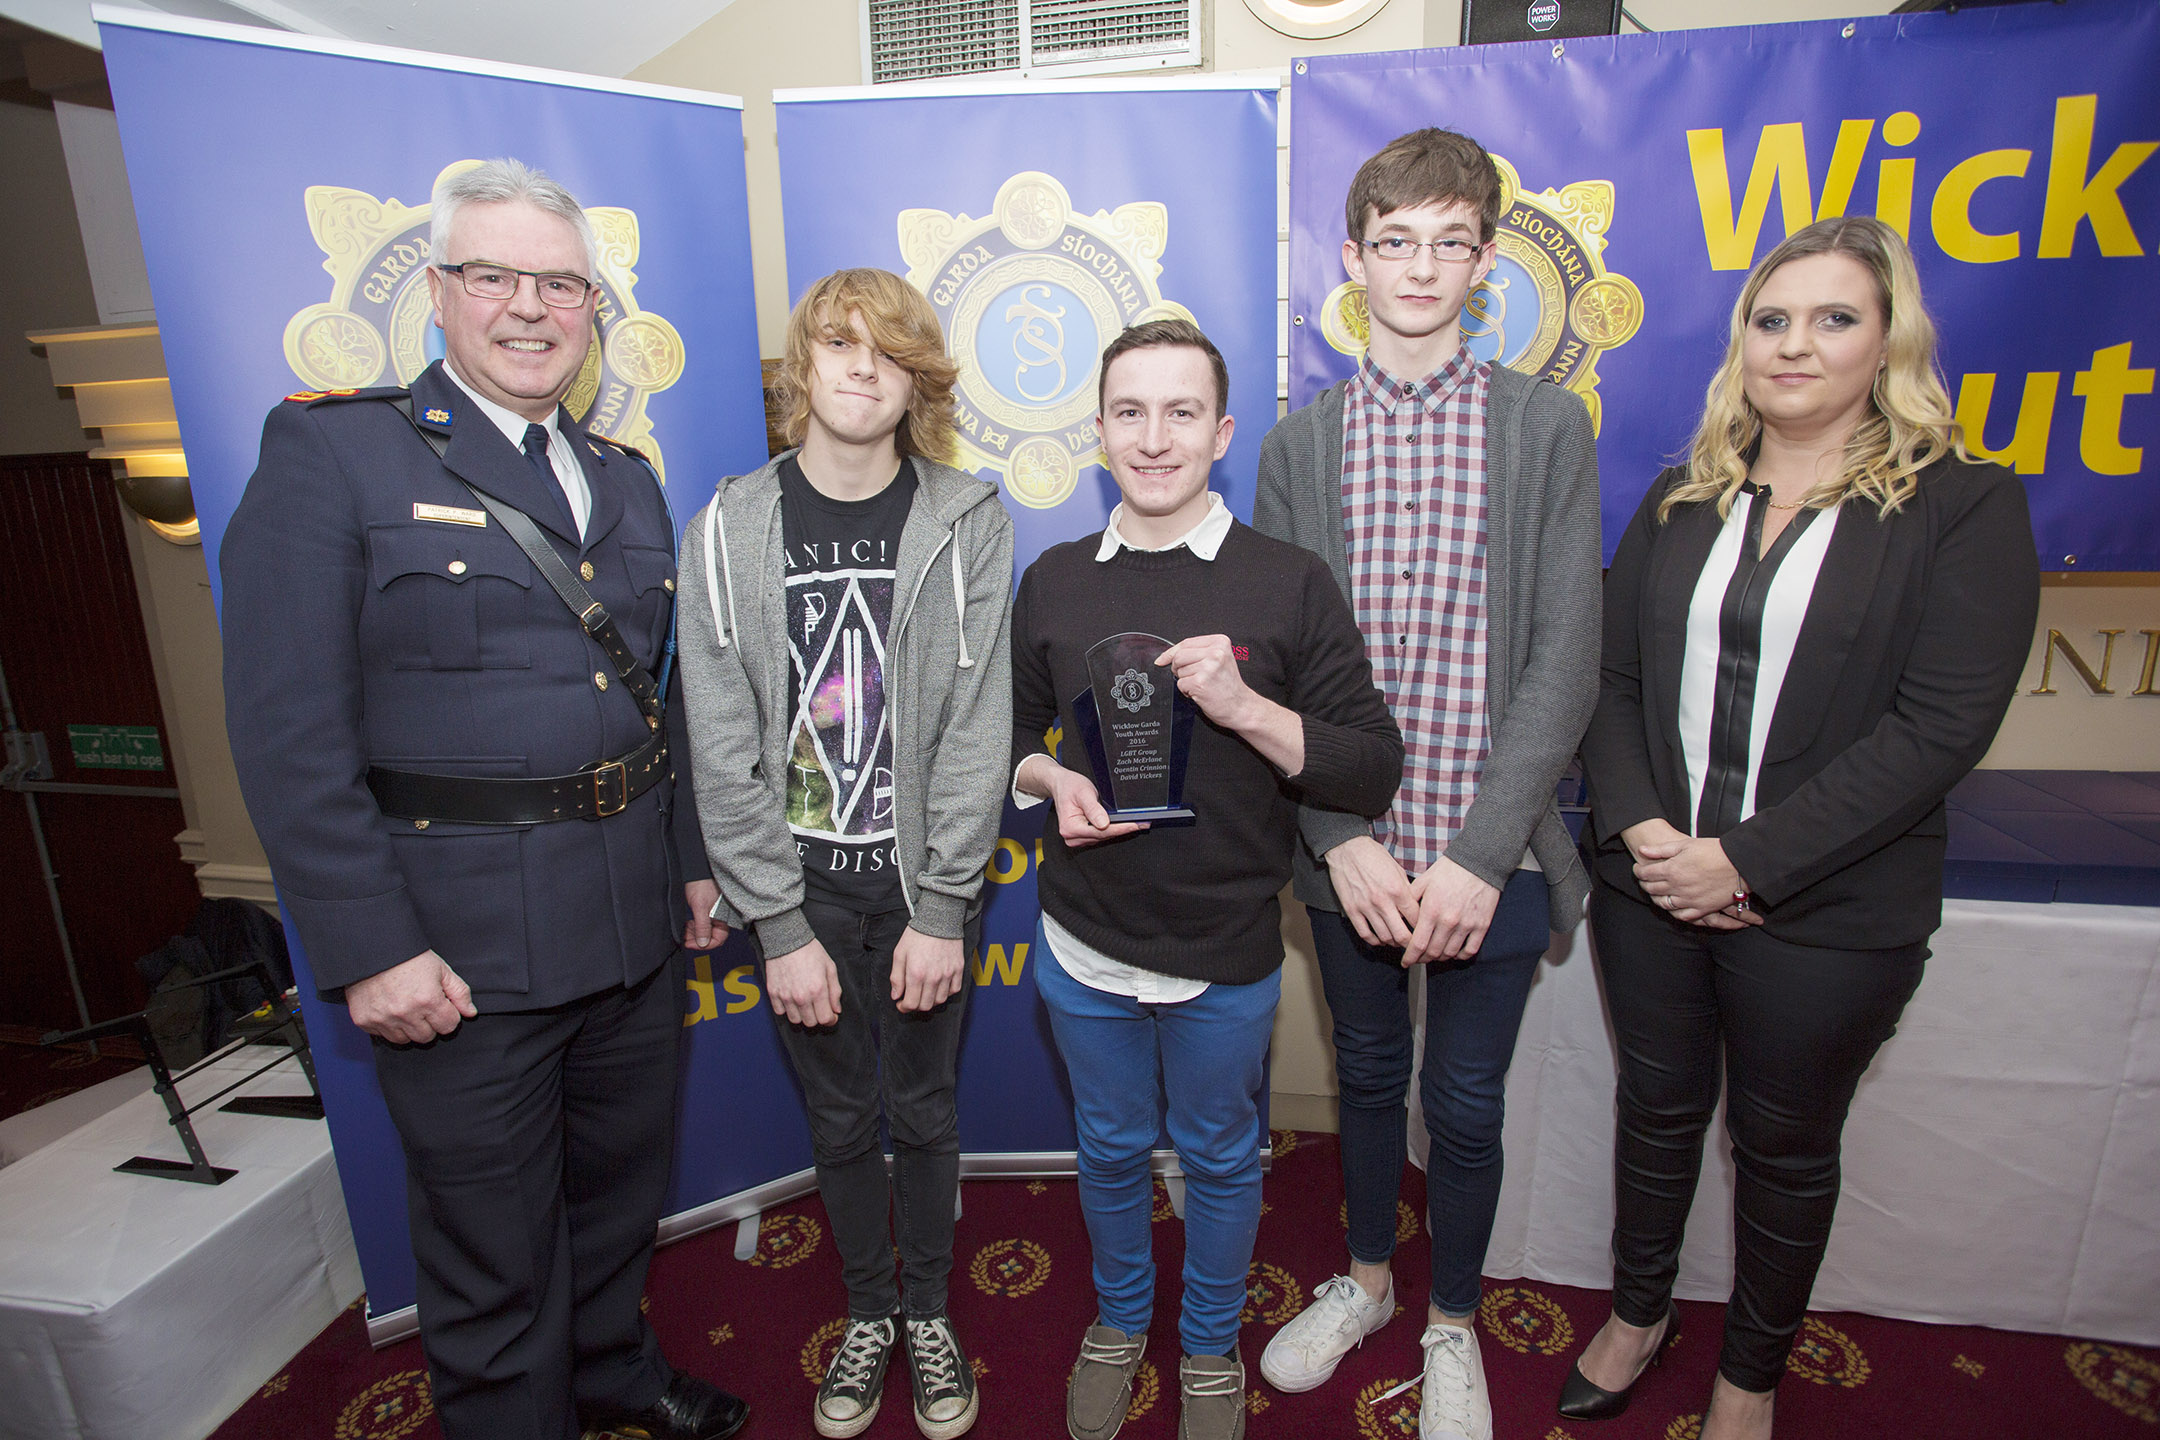 Zach McErlane, Quintin Crinnon and David Vickers from Bray recieve their youth award from Superintendant Pat Ward and Garda youth officer Emma Skinner at the 2nd Annual Wicklow Garda Youth Awards which was held in the Grand Hotel, Wicklow Town.